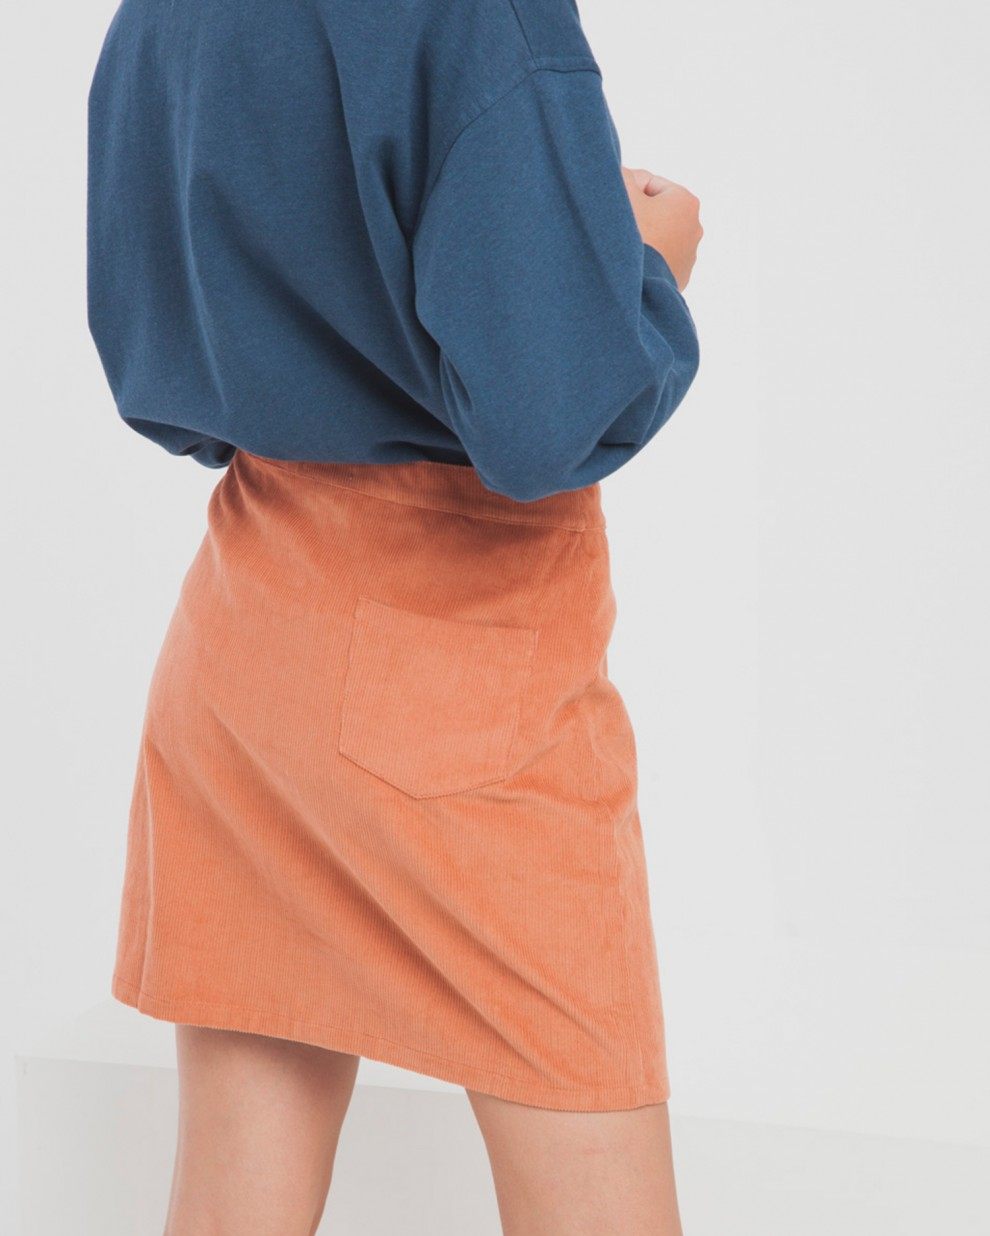 Sunburn Corduroy Short Skirt